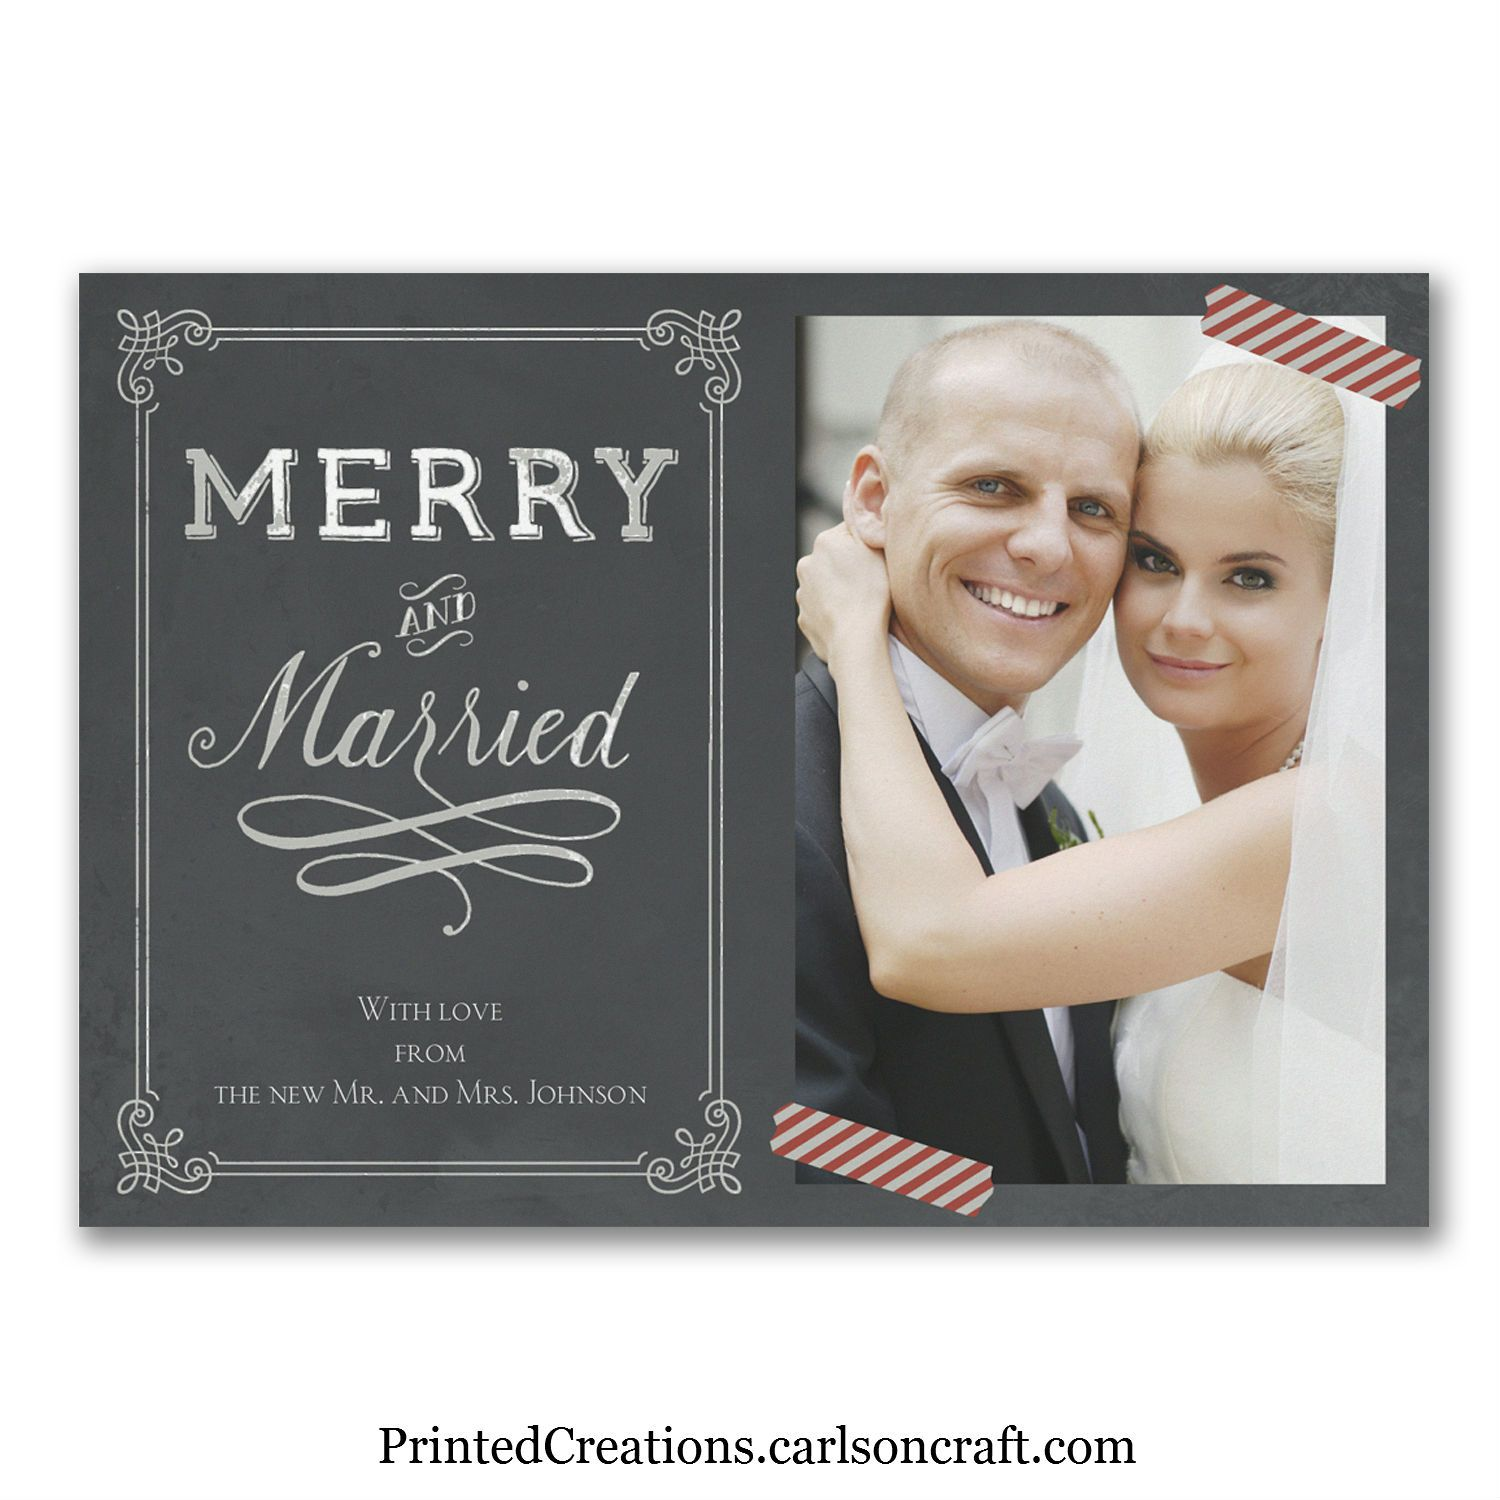 Sending this Merry and Married Christmas card is the perfect way to ...